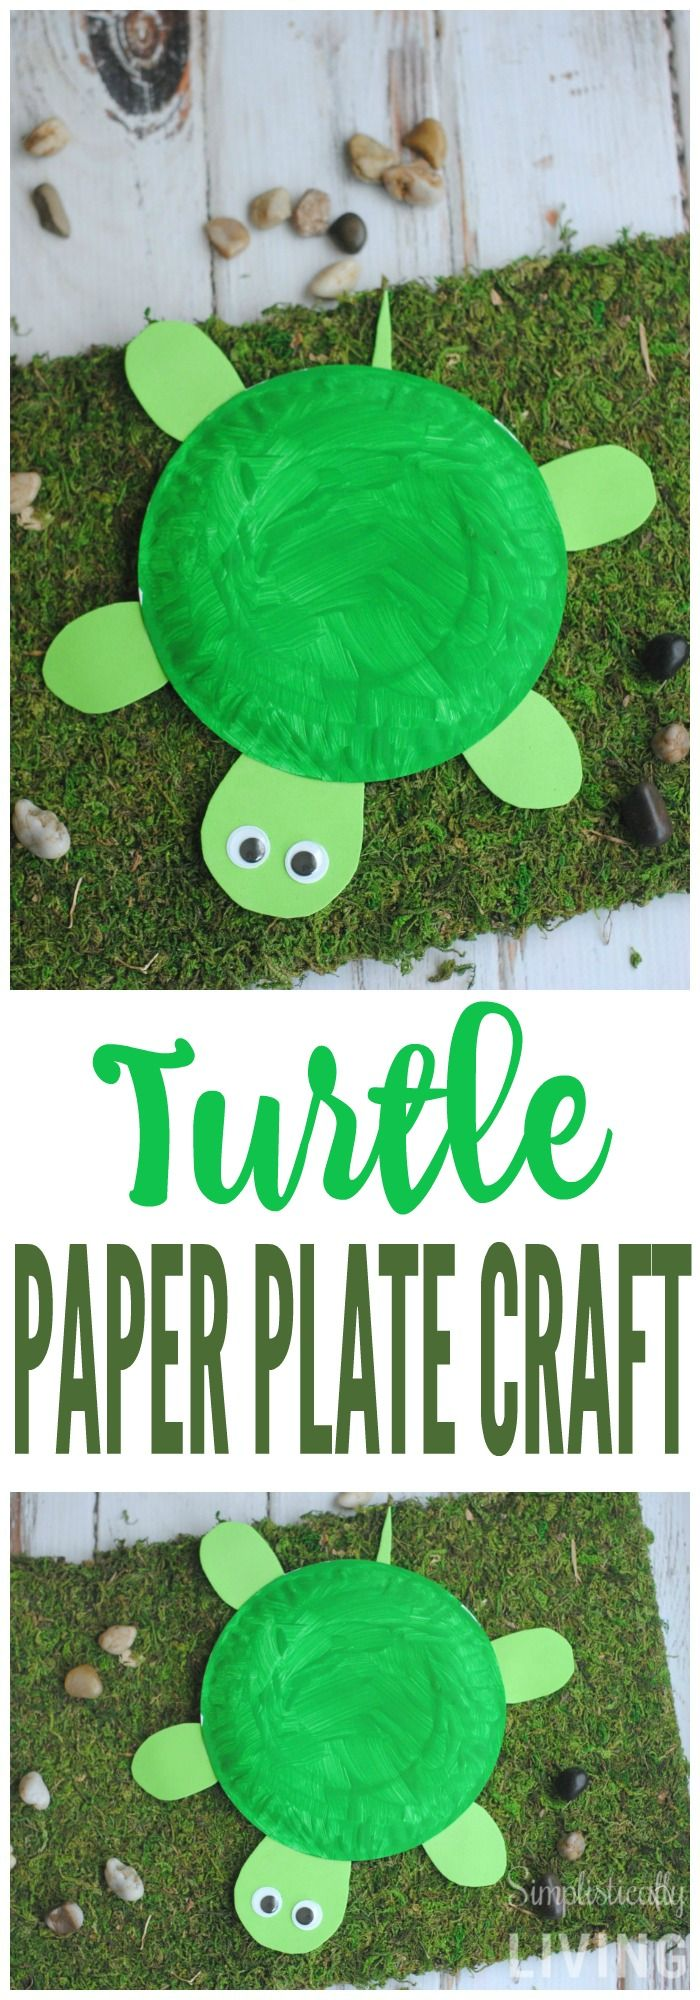 DIY Turtle Paper Plate, Crafts with Paper Plates, How to Make Turtle Crafts, Rainy Day Craft Ideas, Kid Craft Ideas, Homeschool Crafts, Preschool Crafts, Construction Paper Crafts